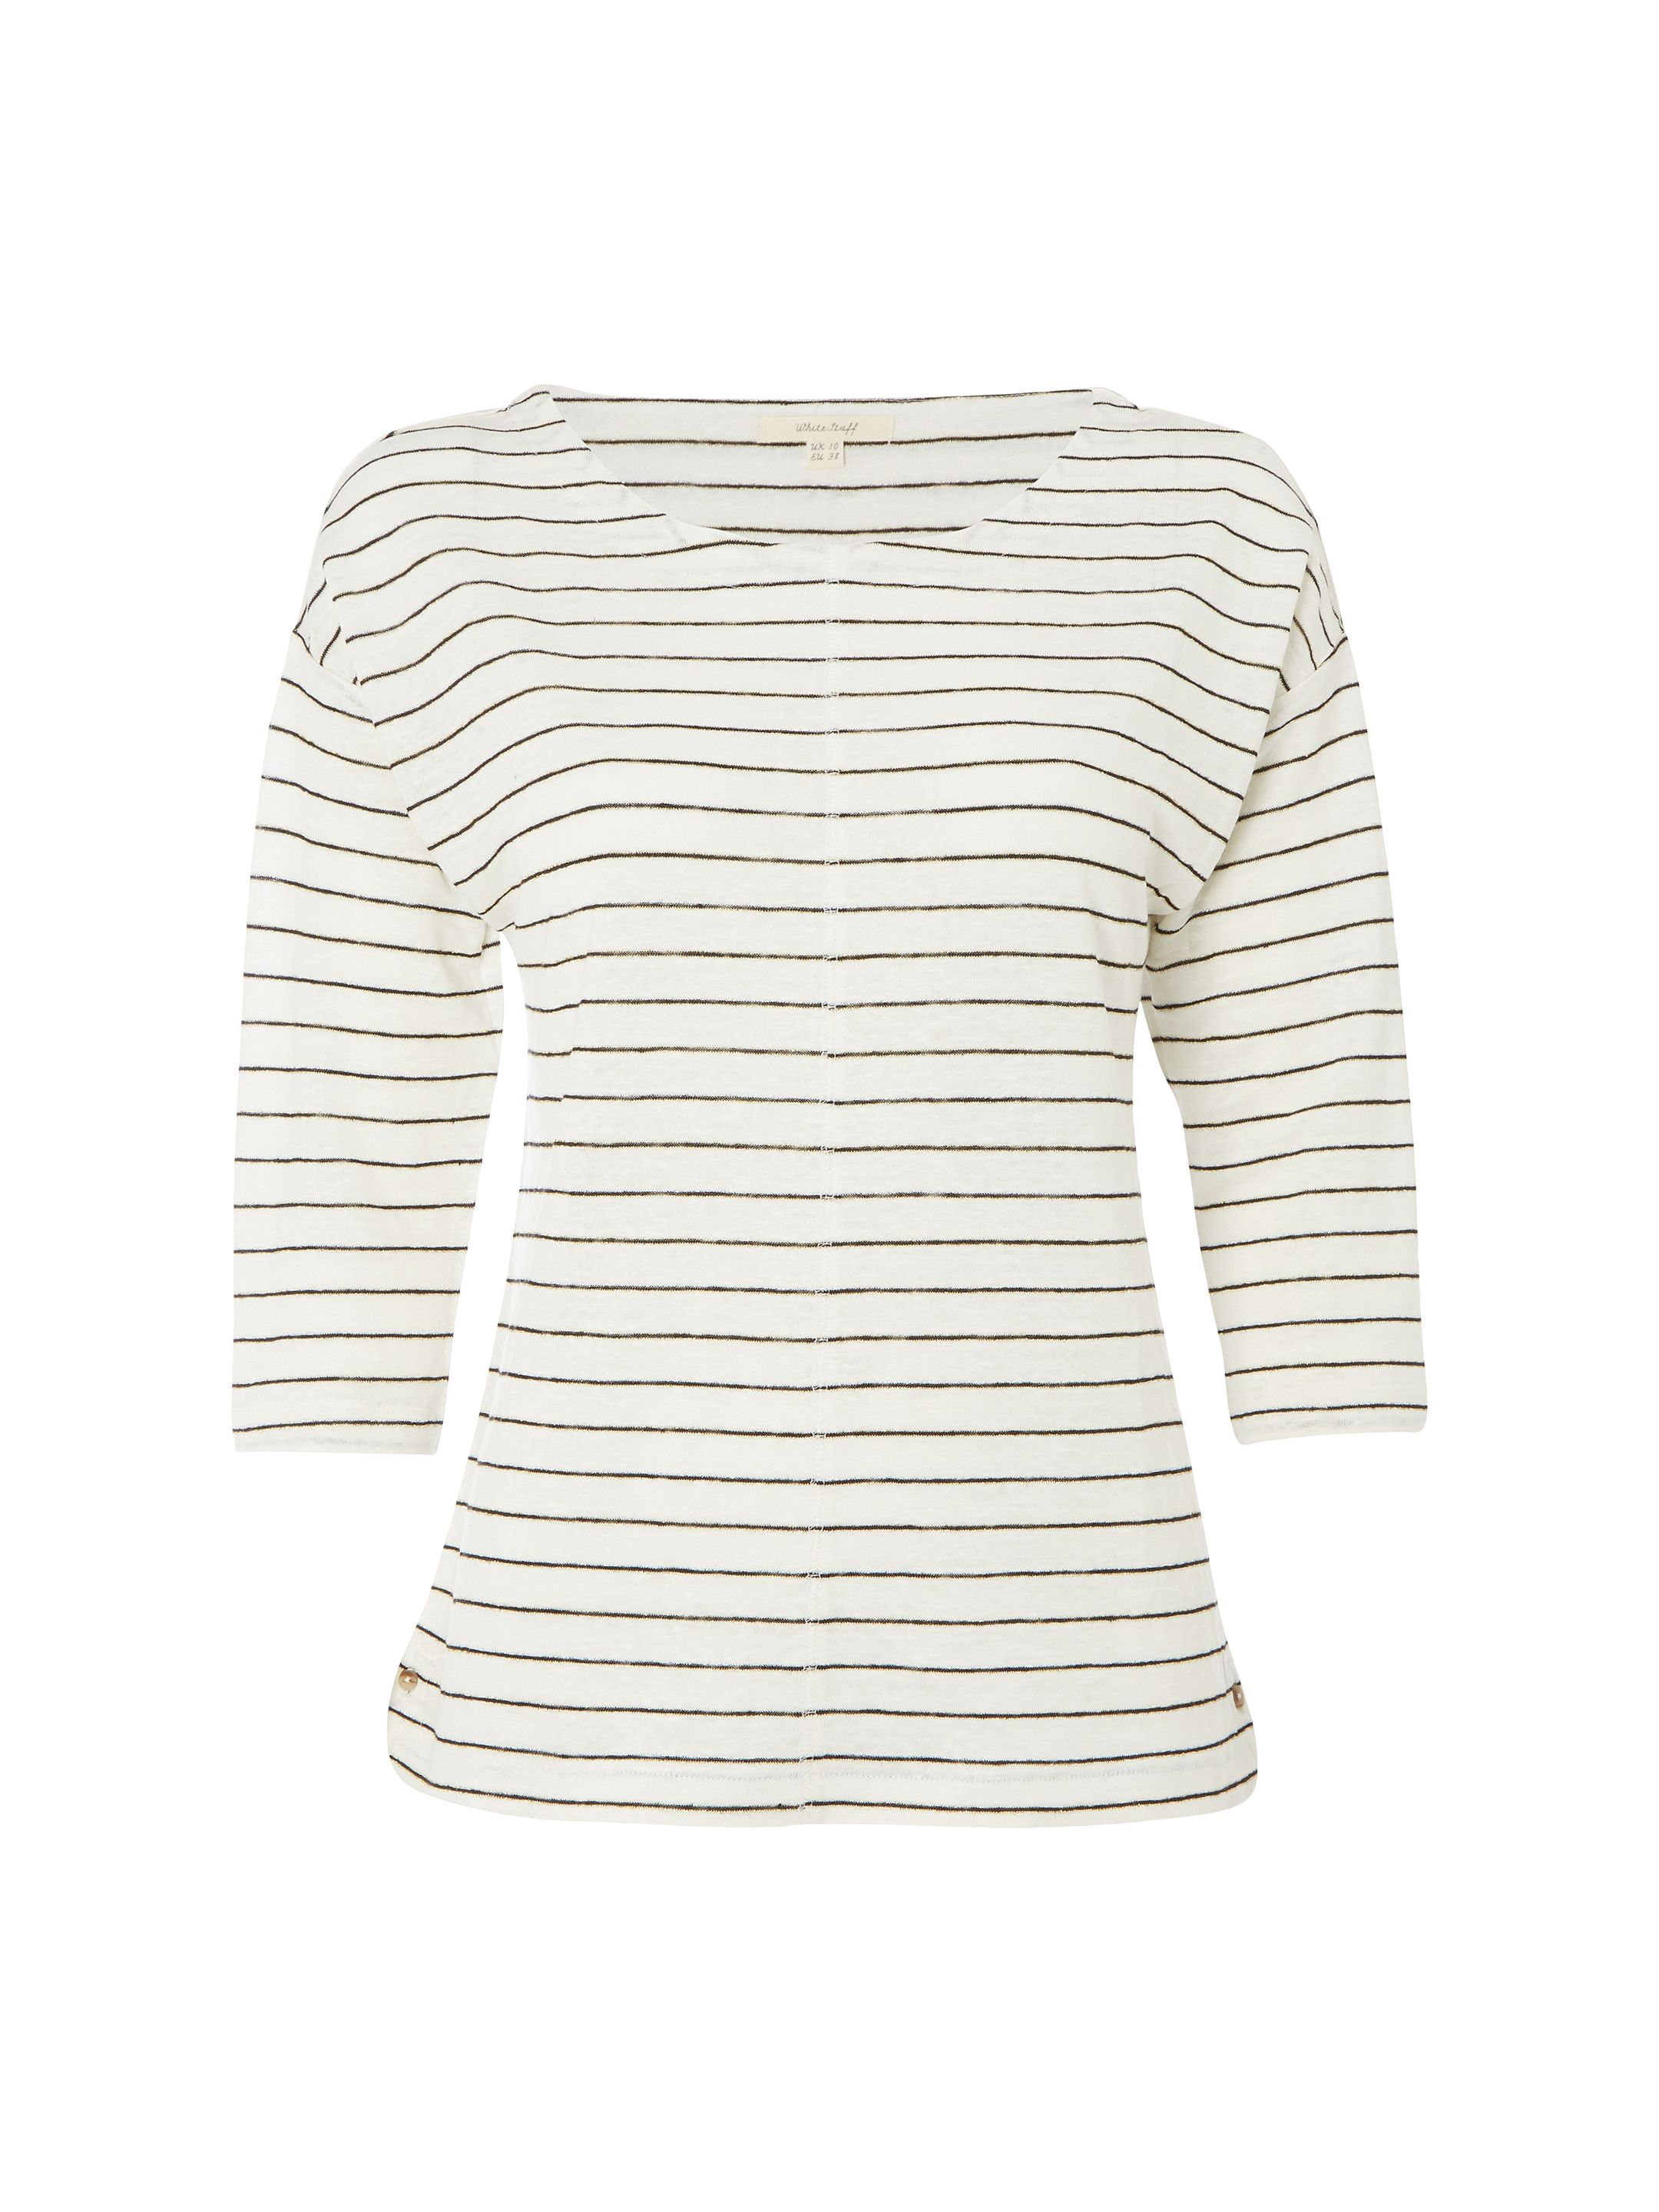 White Stuff Shimmer Stripe Jersey Tee, Grey